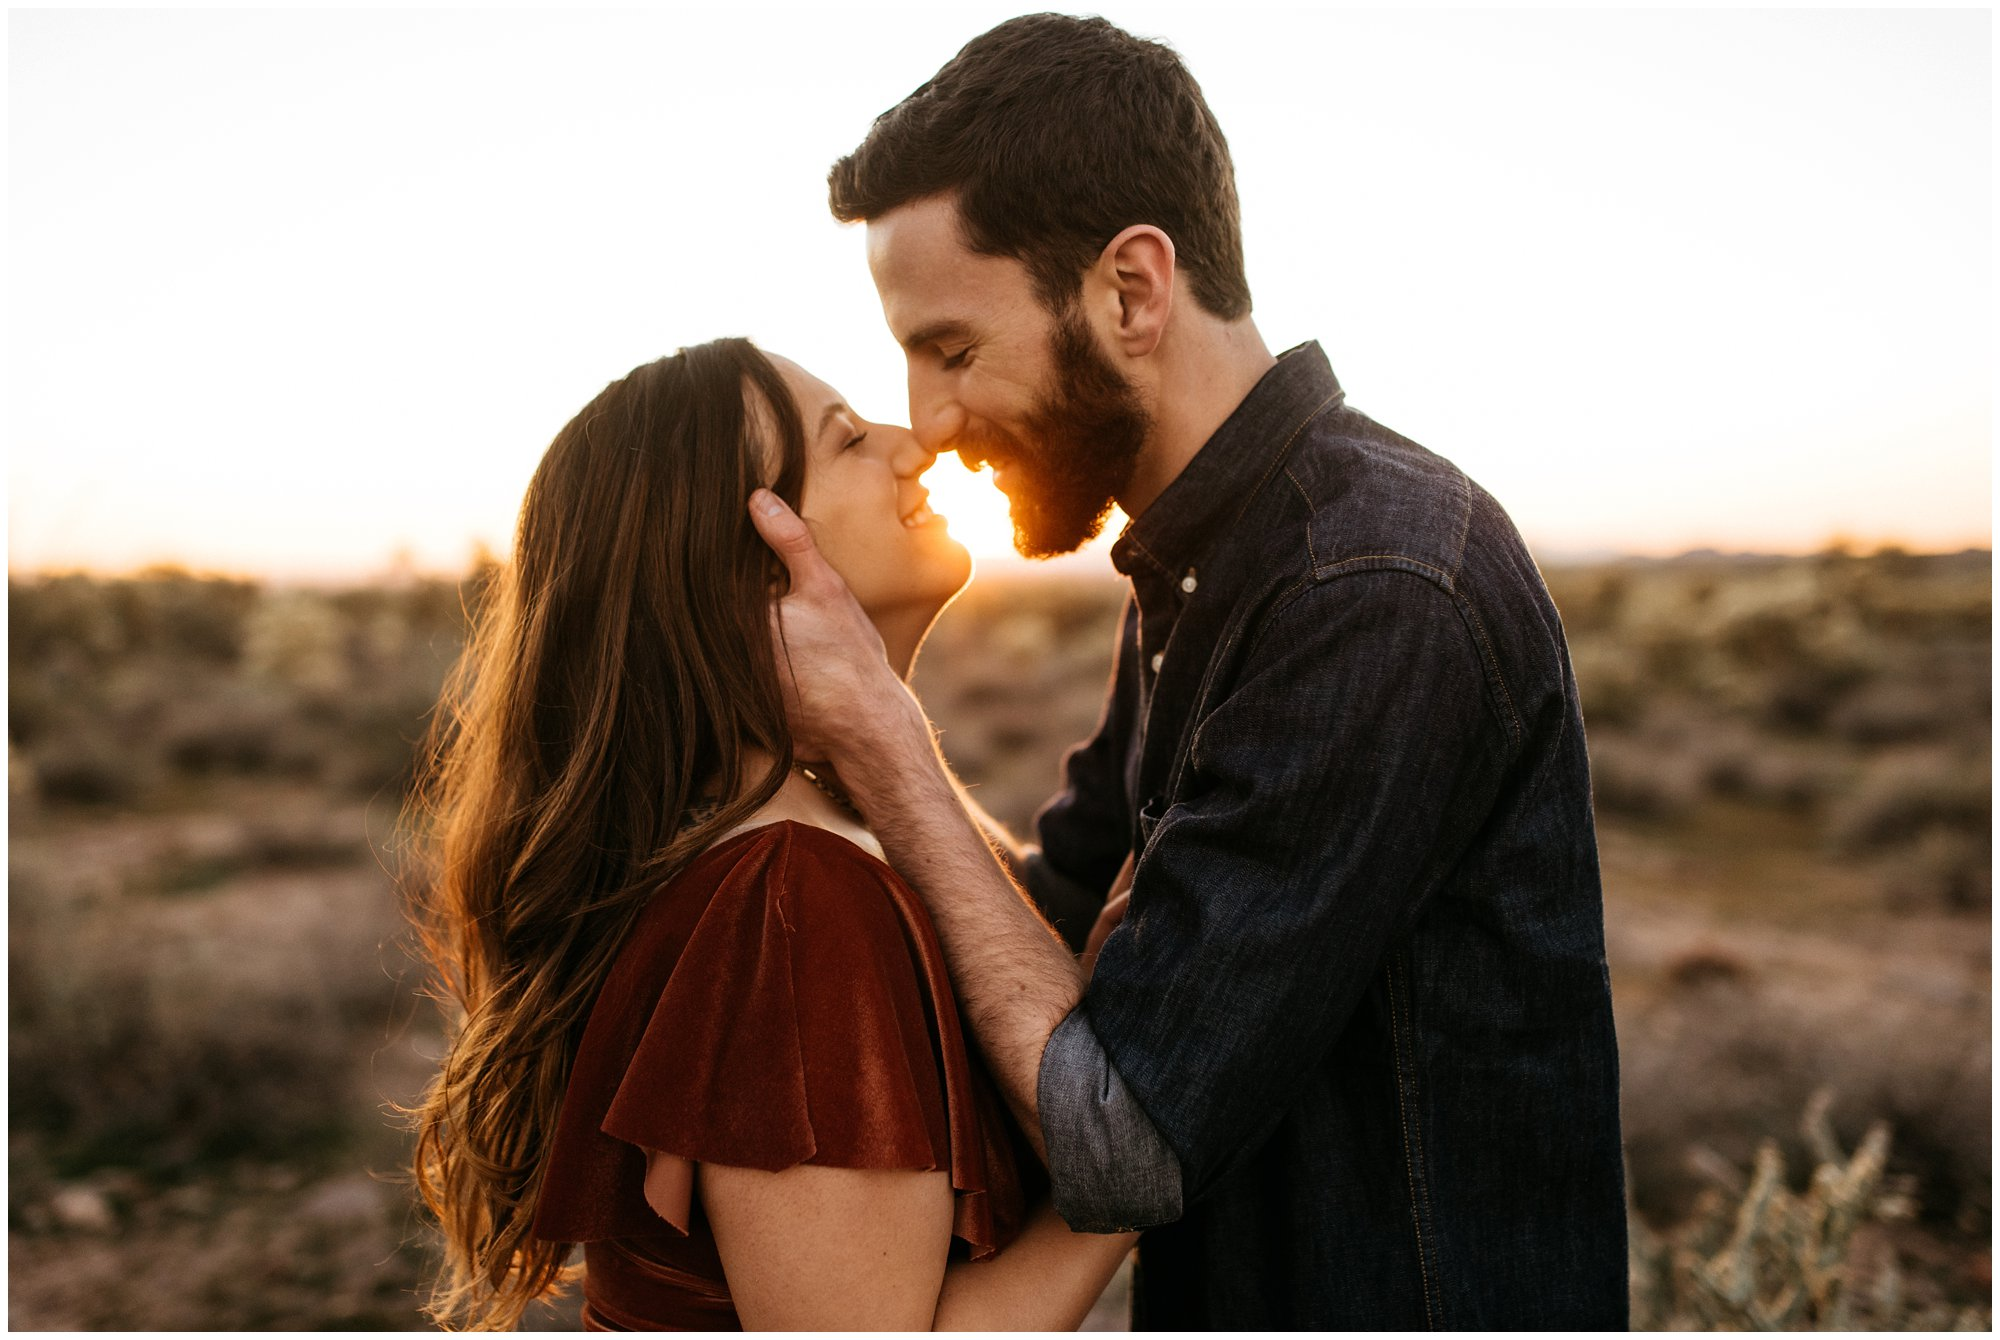 Arizona Desert Engagement Session - Megan + Geno - Ashtyn Nicole Photo_0029.jpg